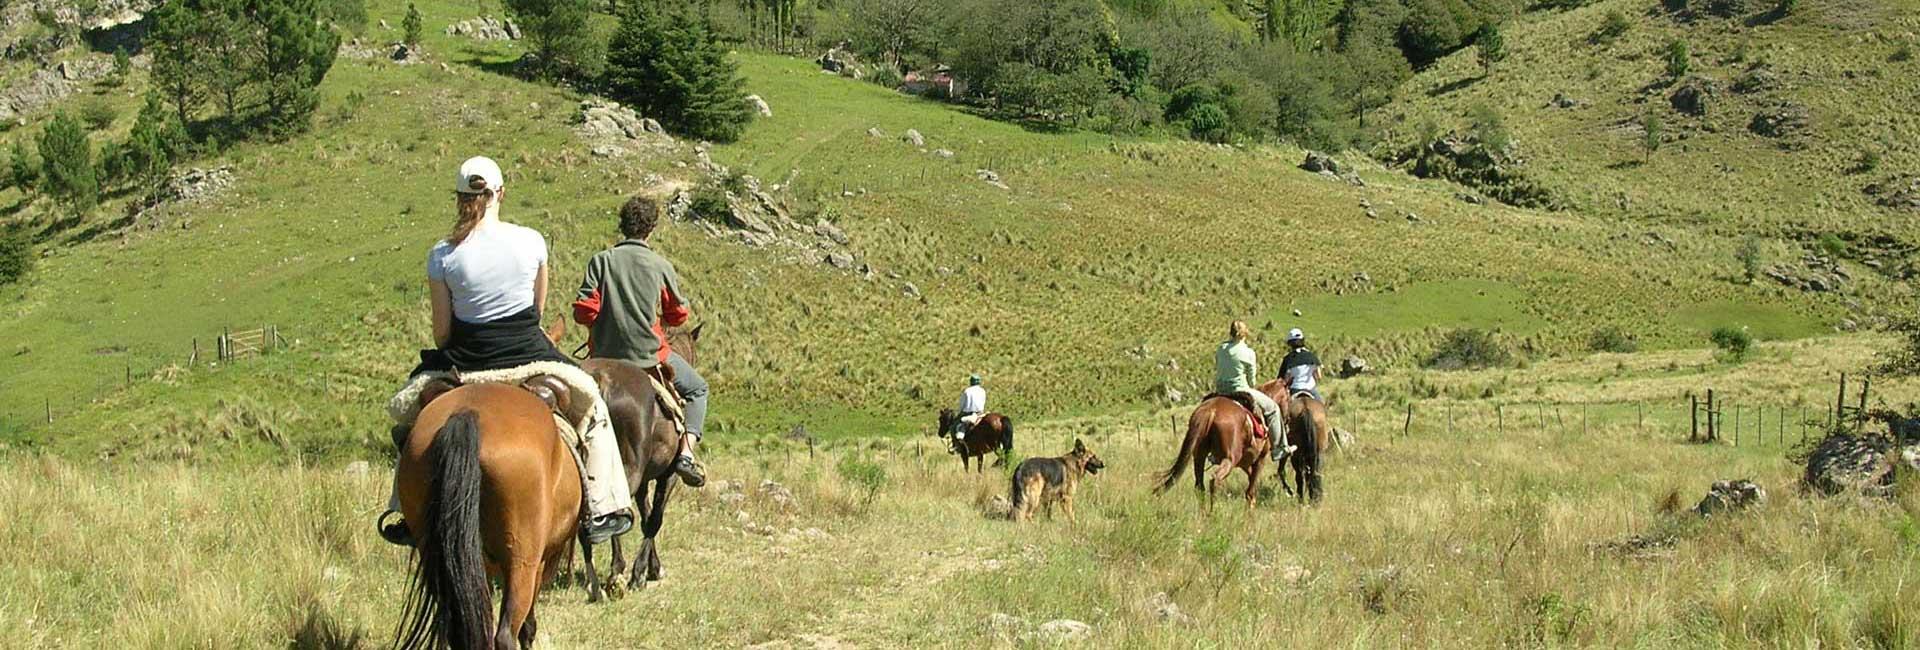 Horseback riding in the Sierras de Córdoba